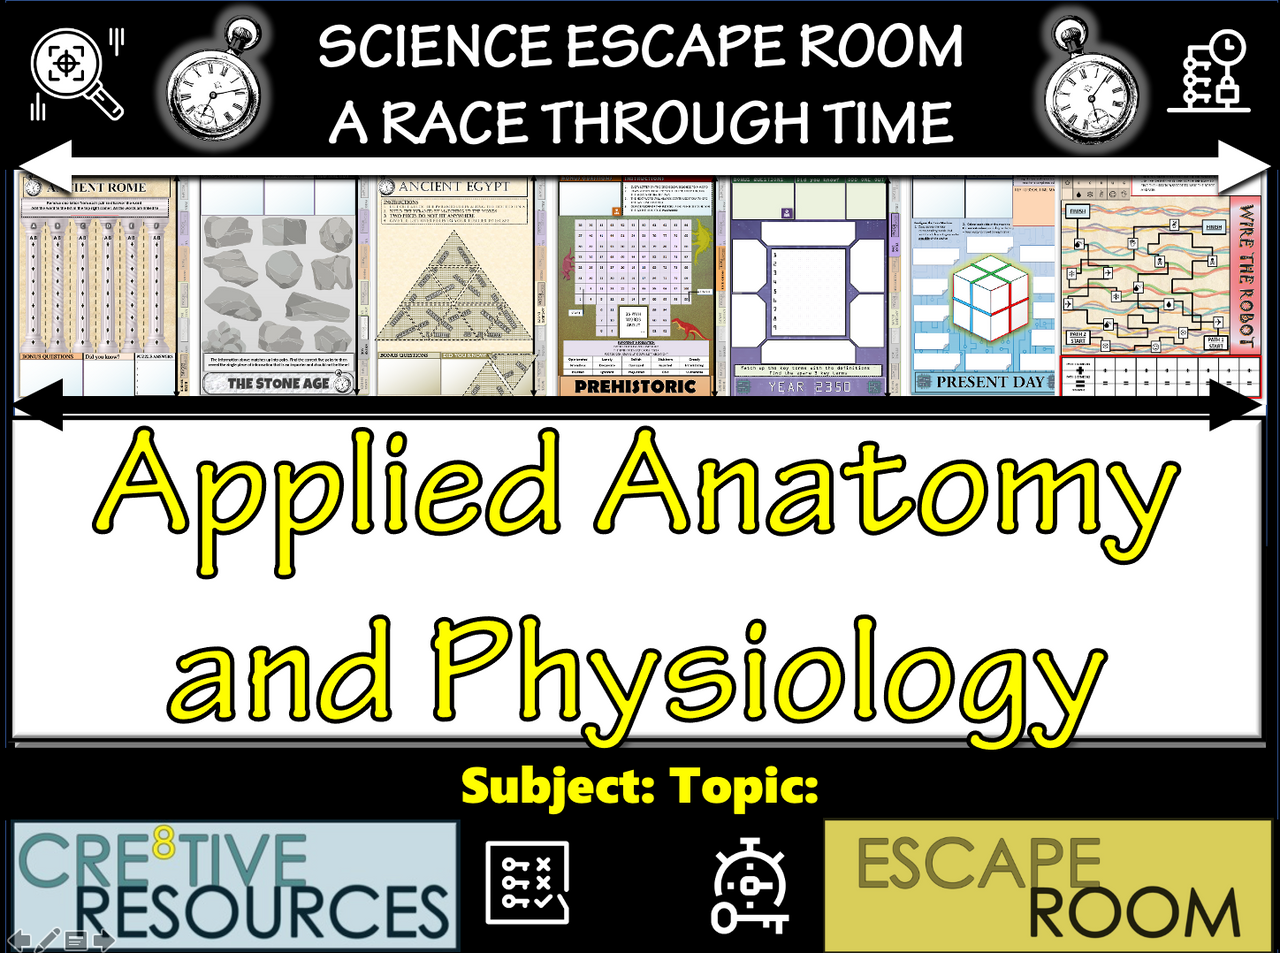 Applied Anatomy and Physiology